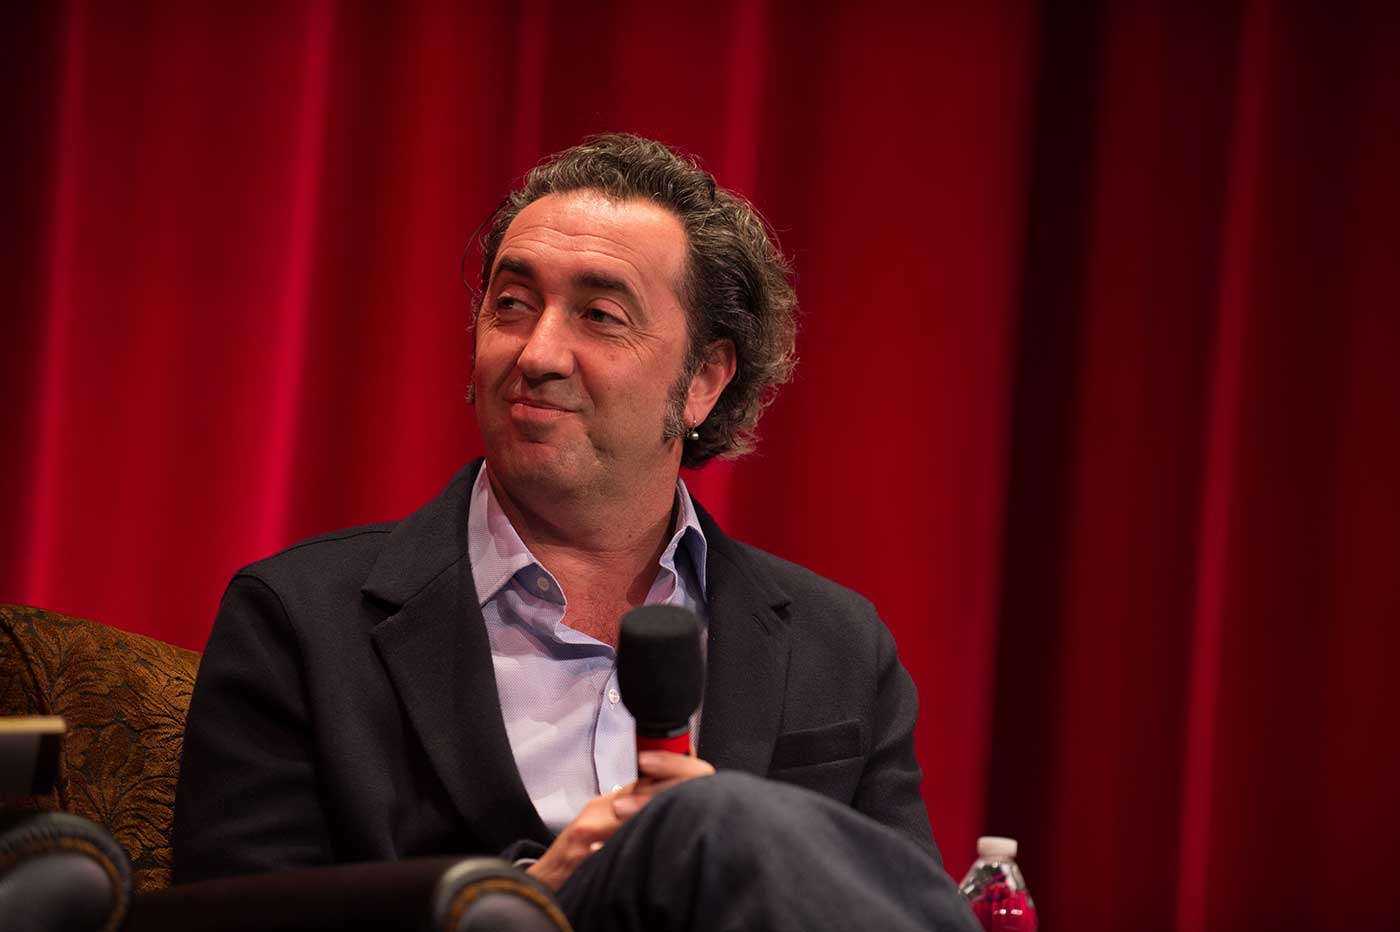 Director Paolo Sorrentino